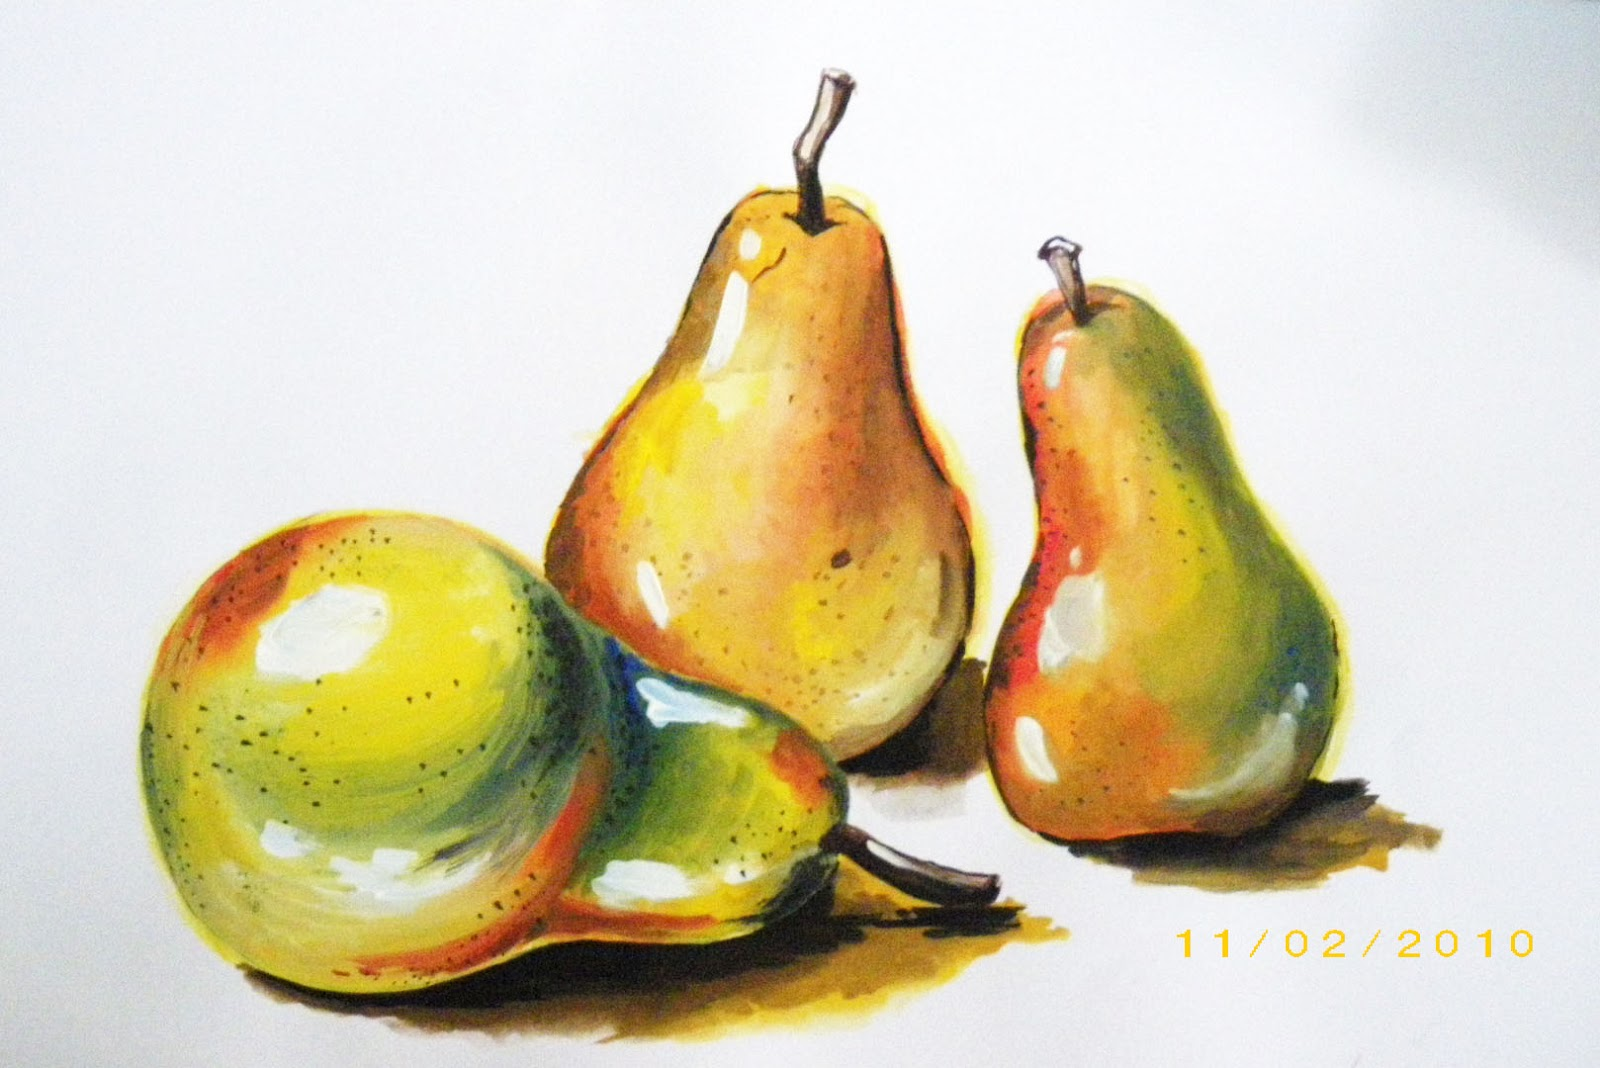 Lukisan Buah Buahan Pictures, Images & Photos | Photobucket